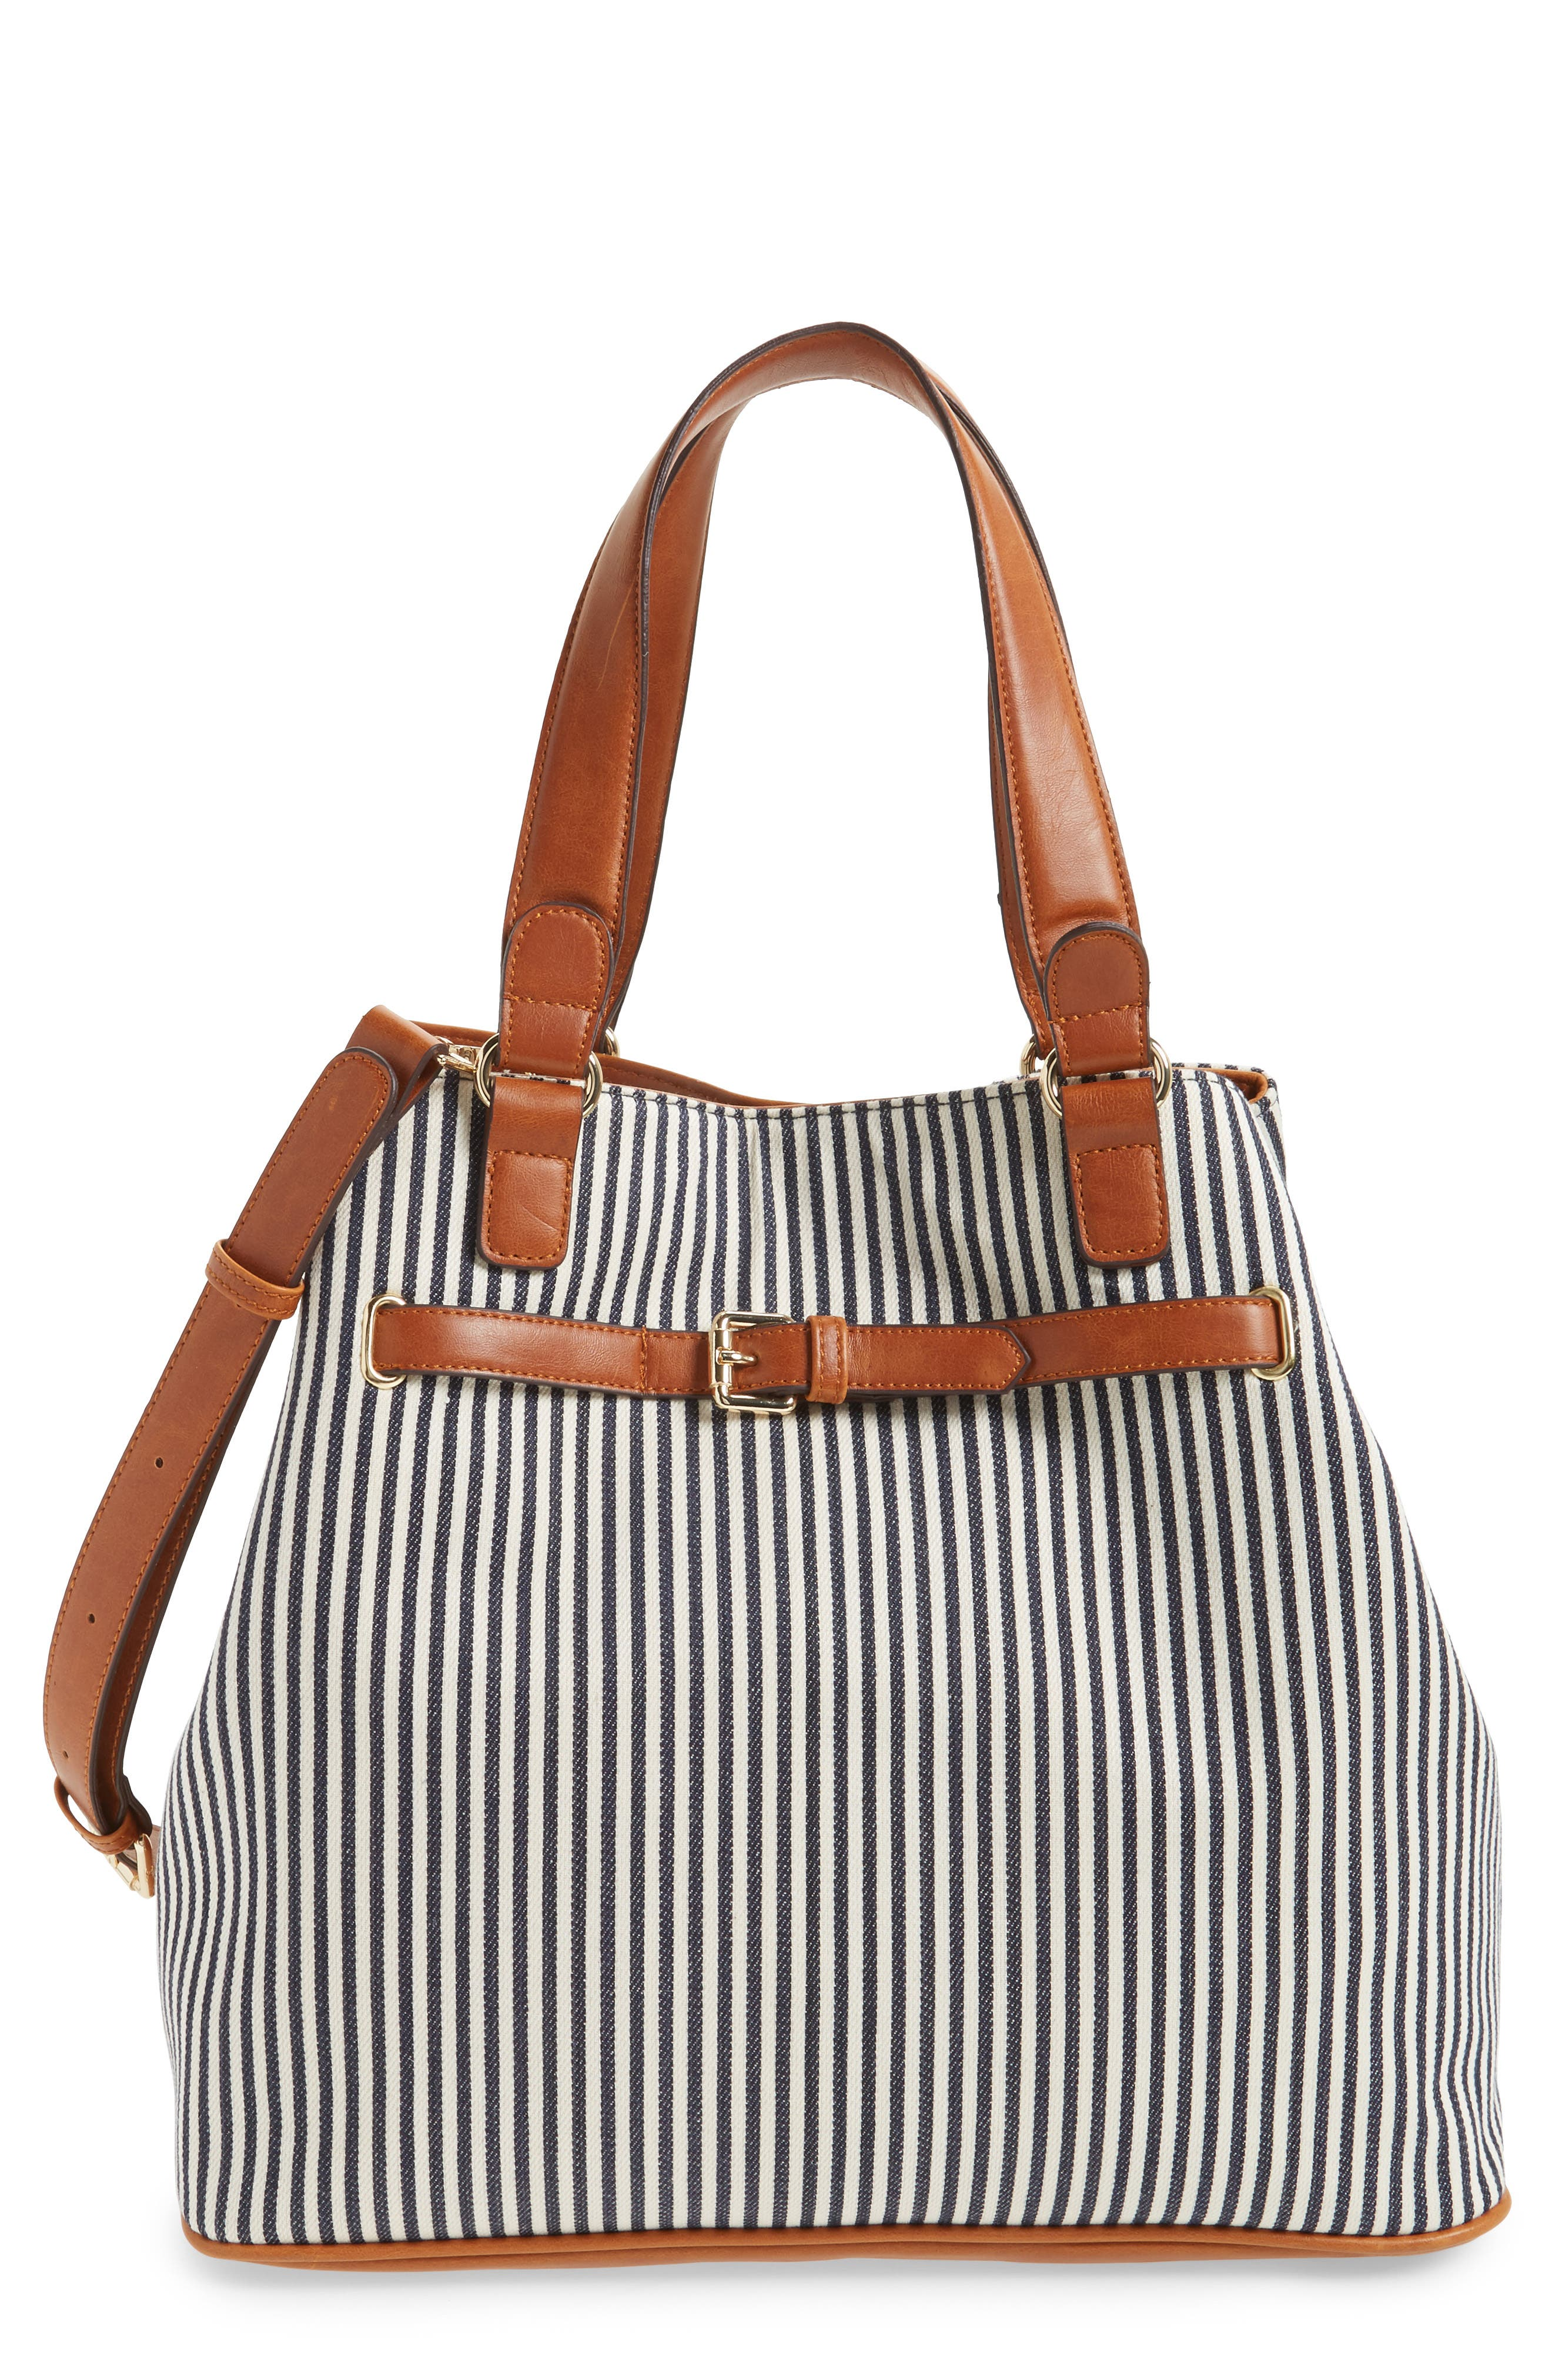 Alternate Image 1 Selected - Sole Society 'Nina' Belted Geo Tote